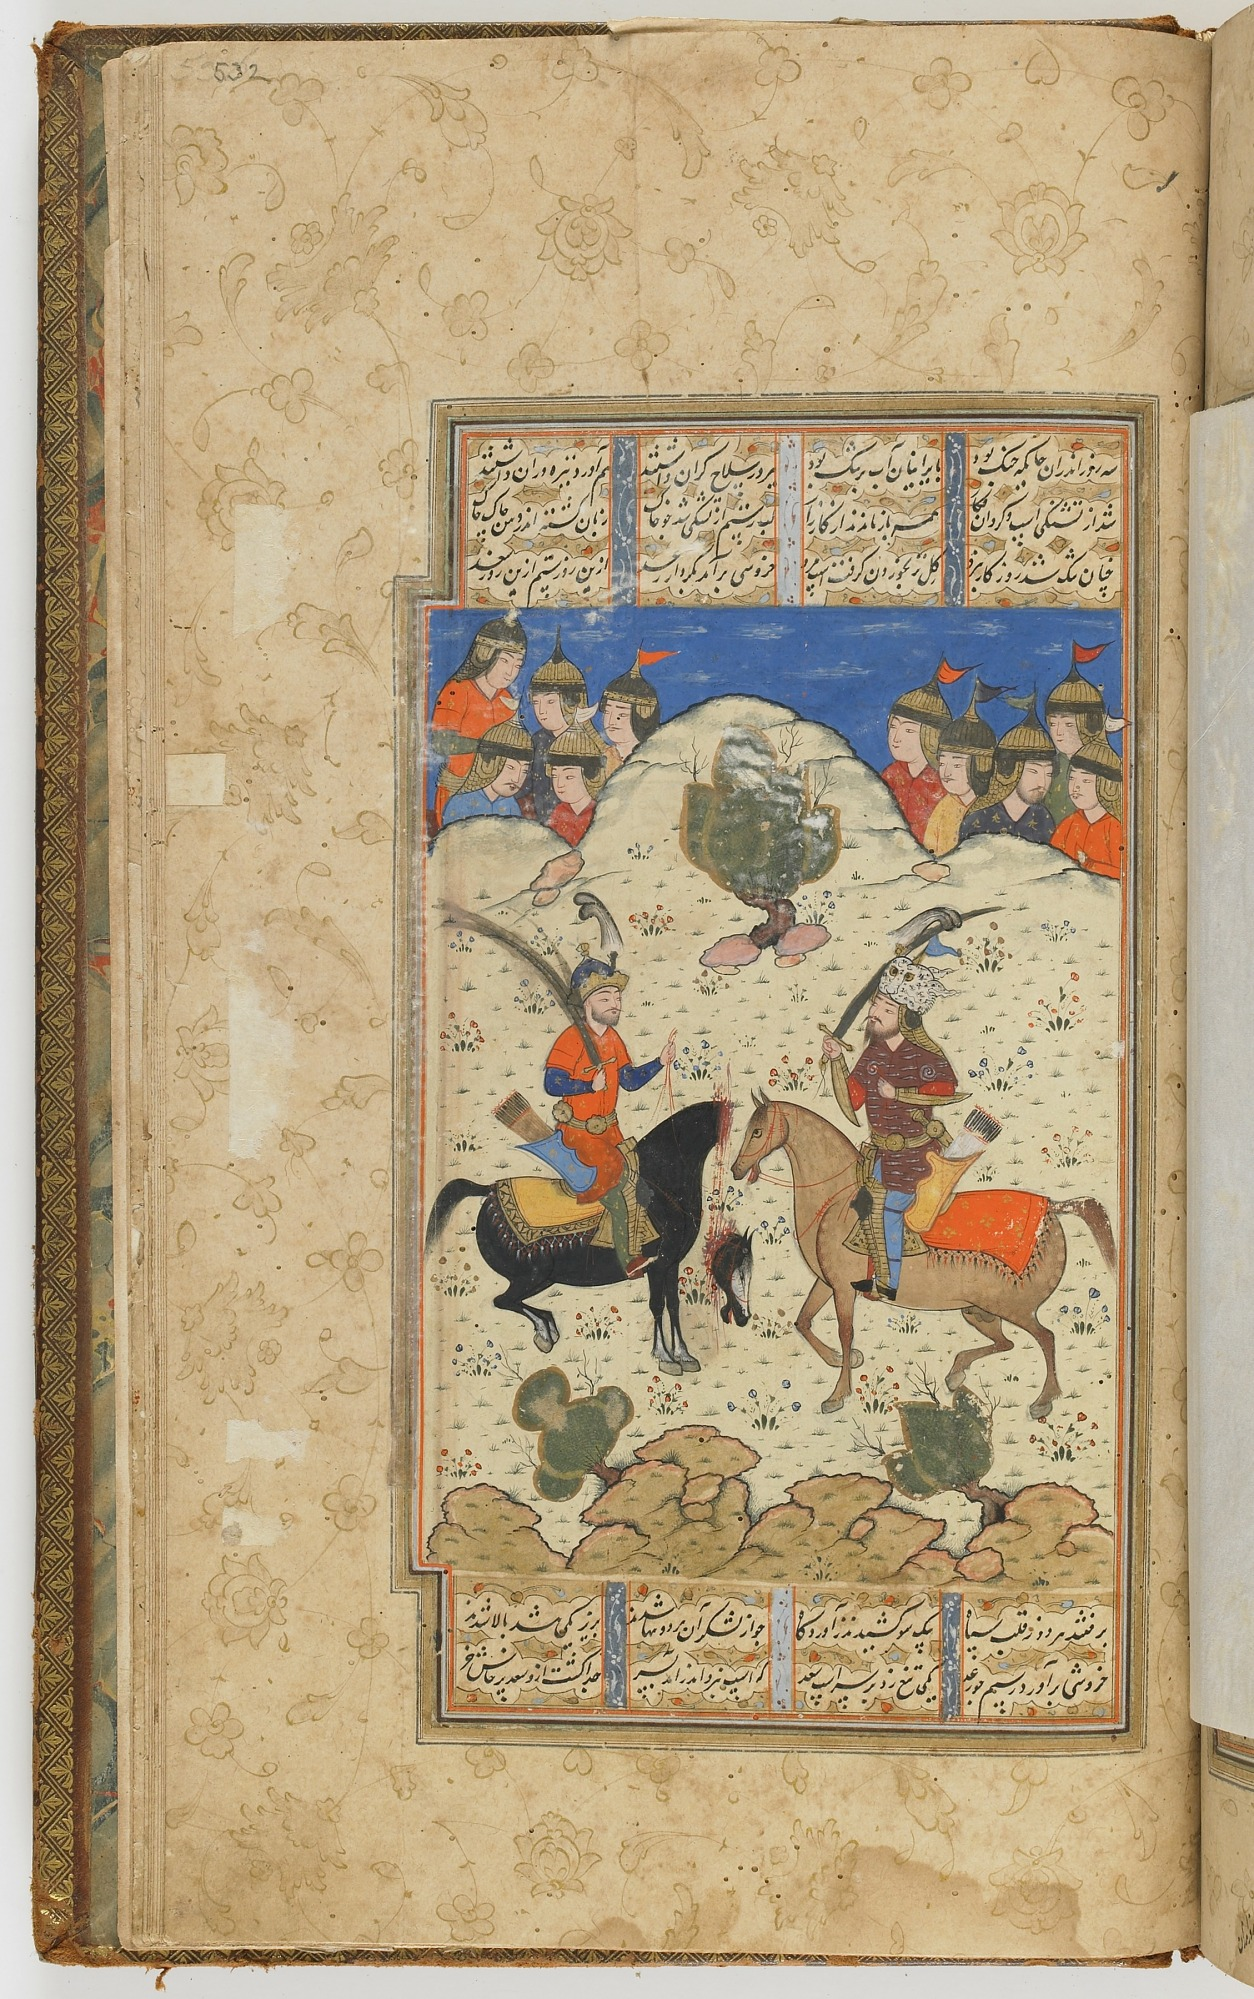 folio 532 recto: The Shahnama (Book of kings) by Firdausi (d. 1020)